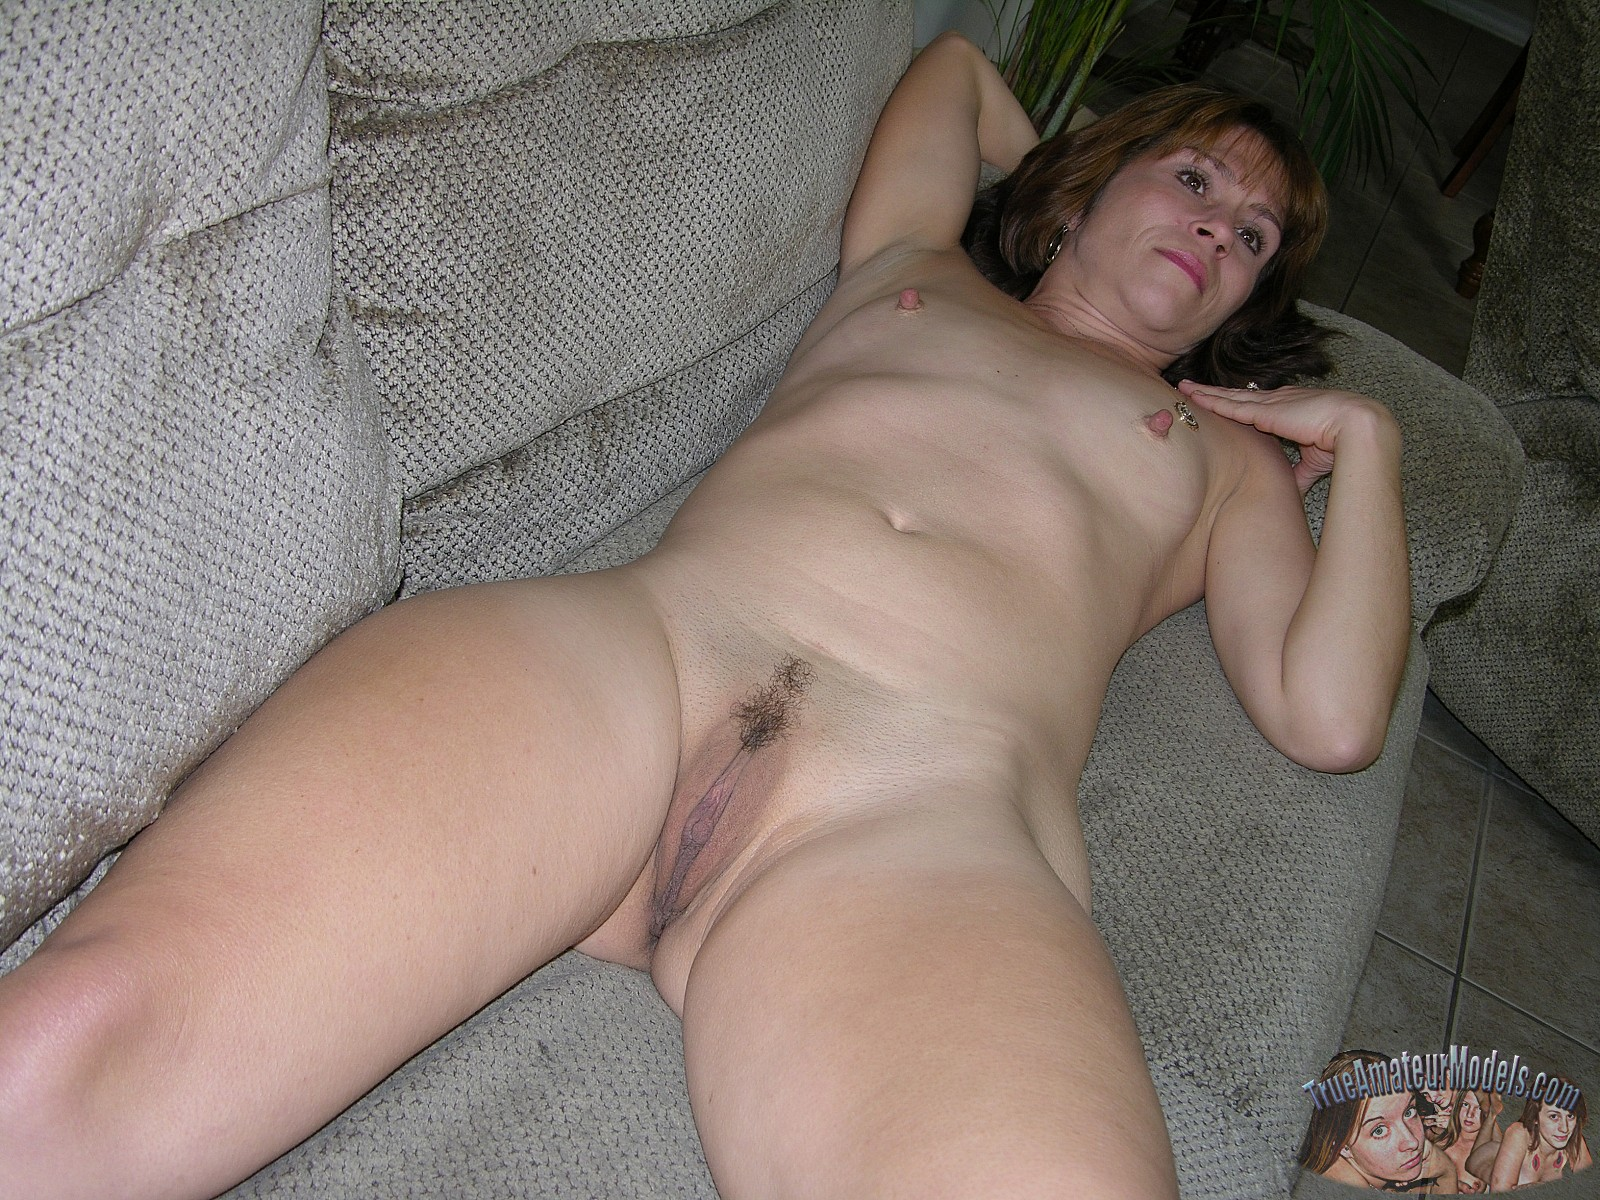 Pity, that amateur reality milf naked